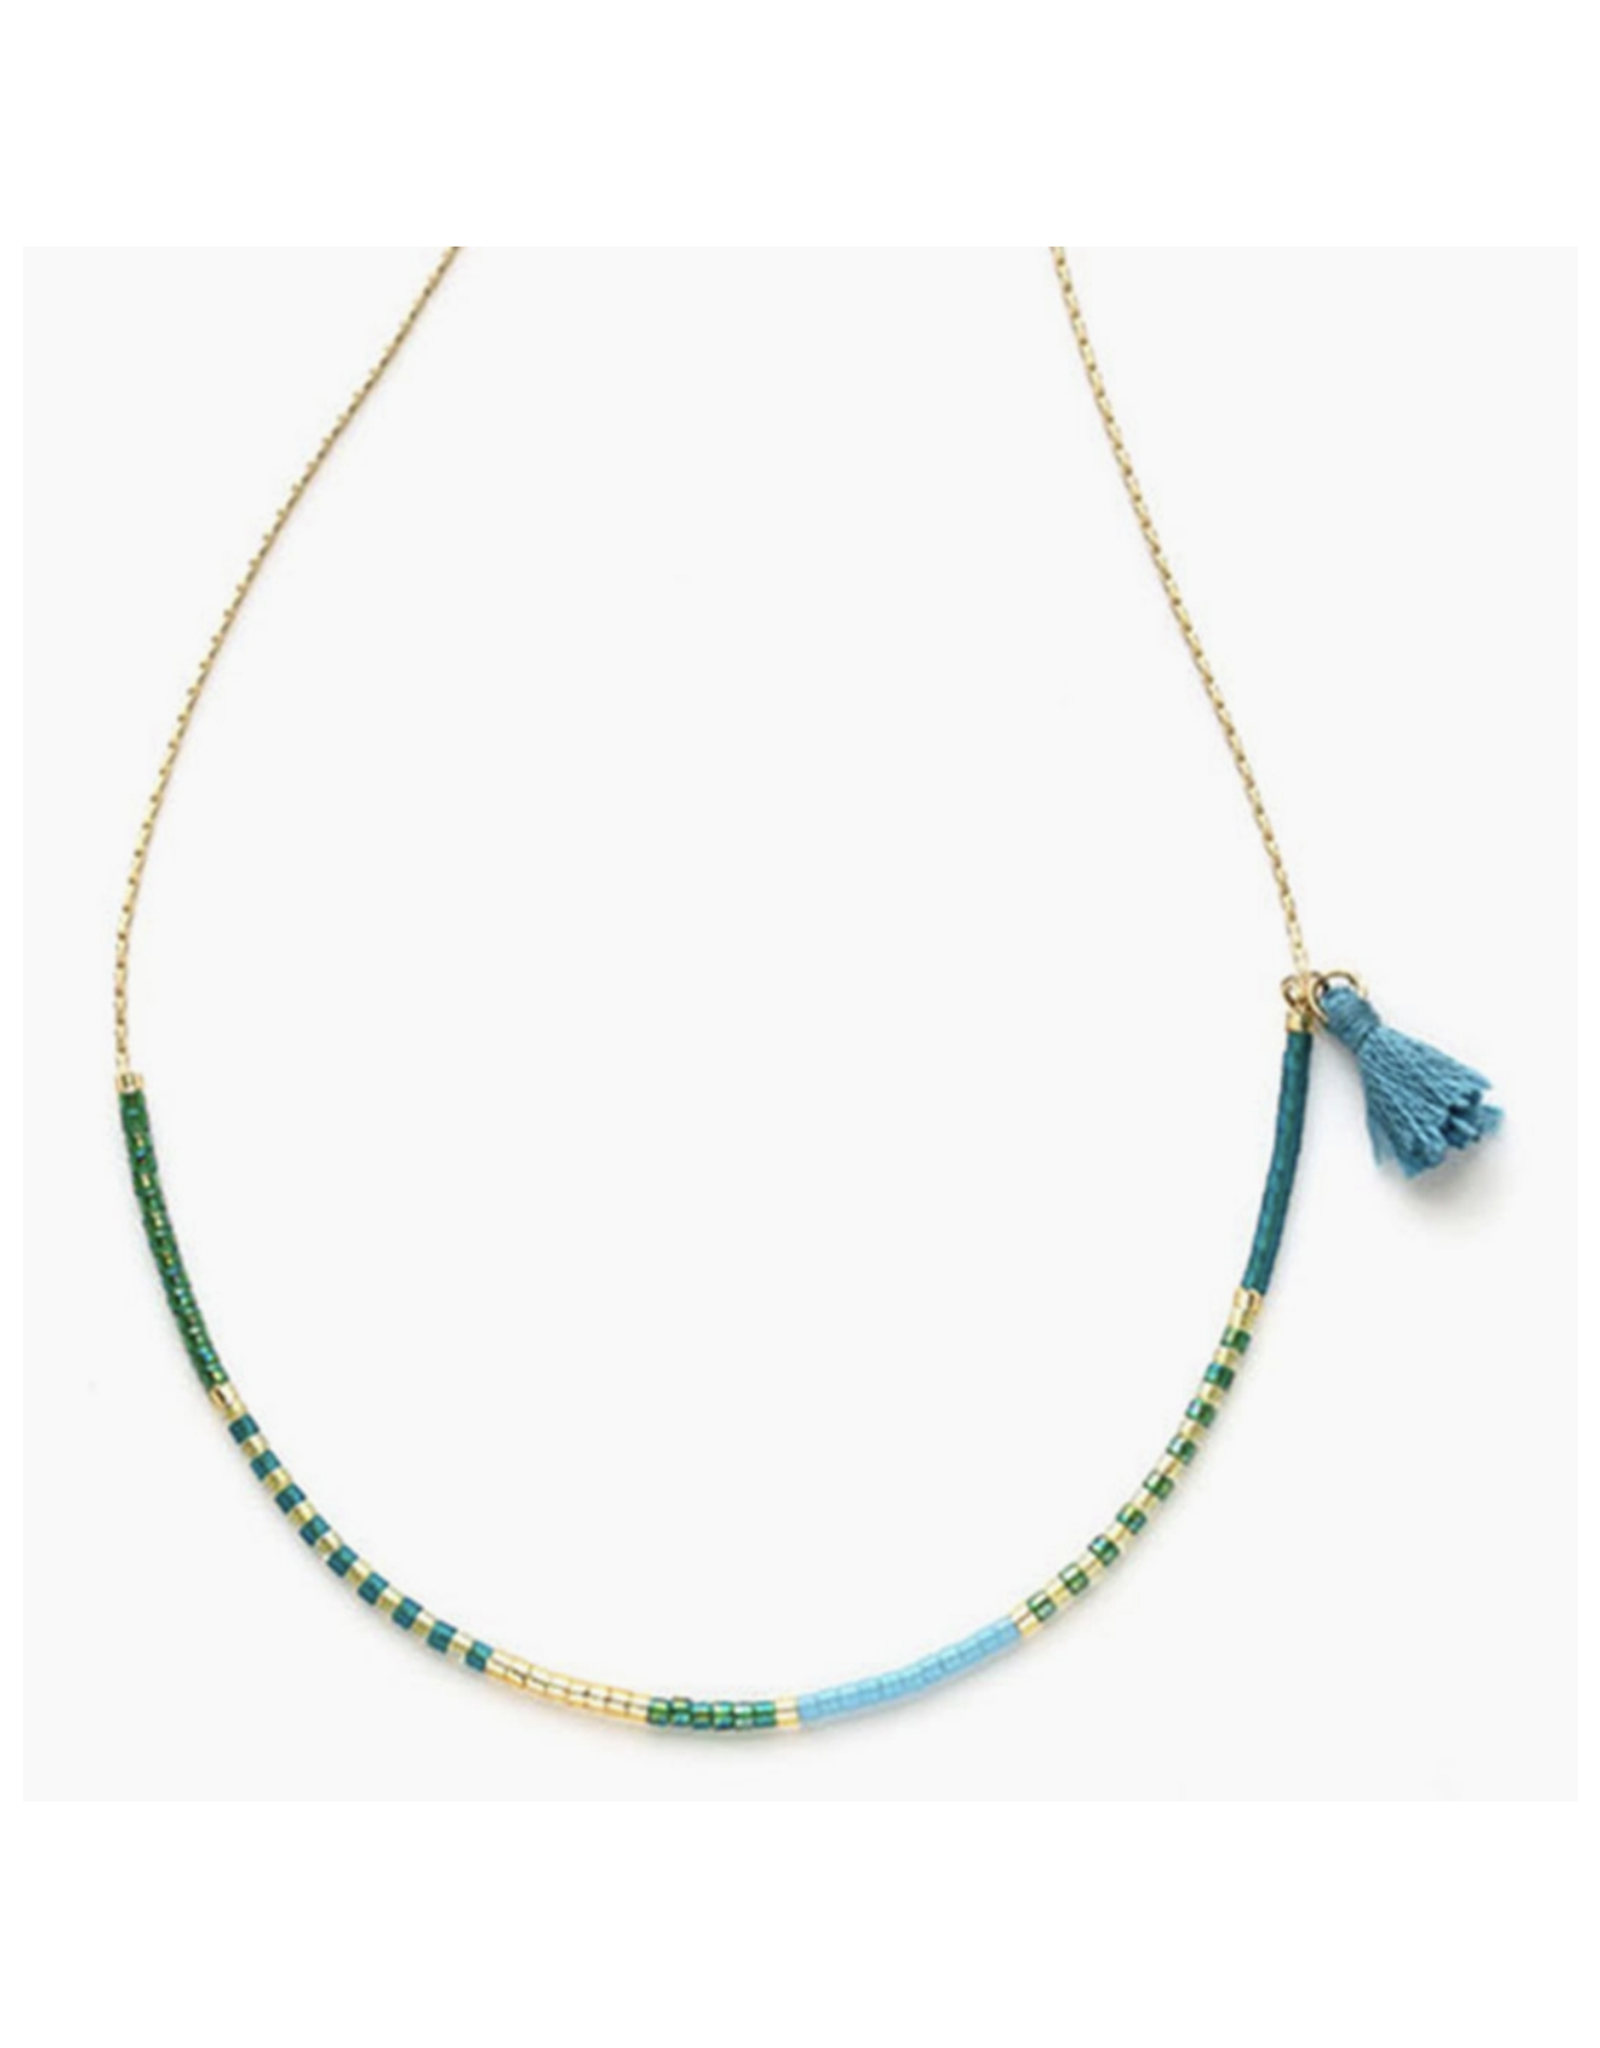 Japanese Seed Bead Necklace - Seashore & Succulents